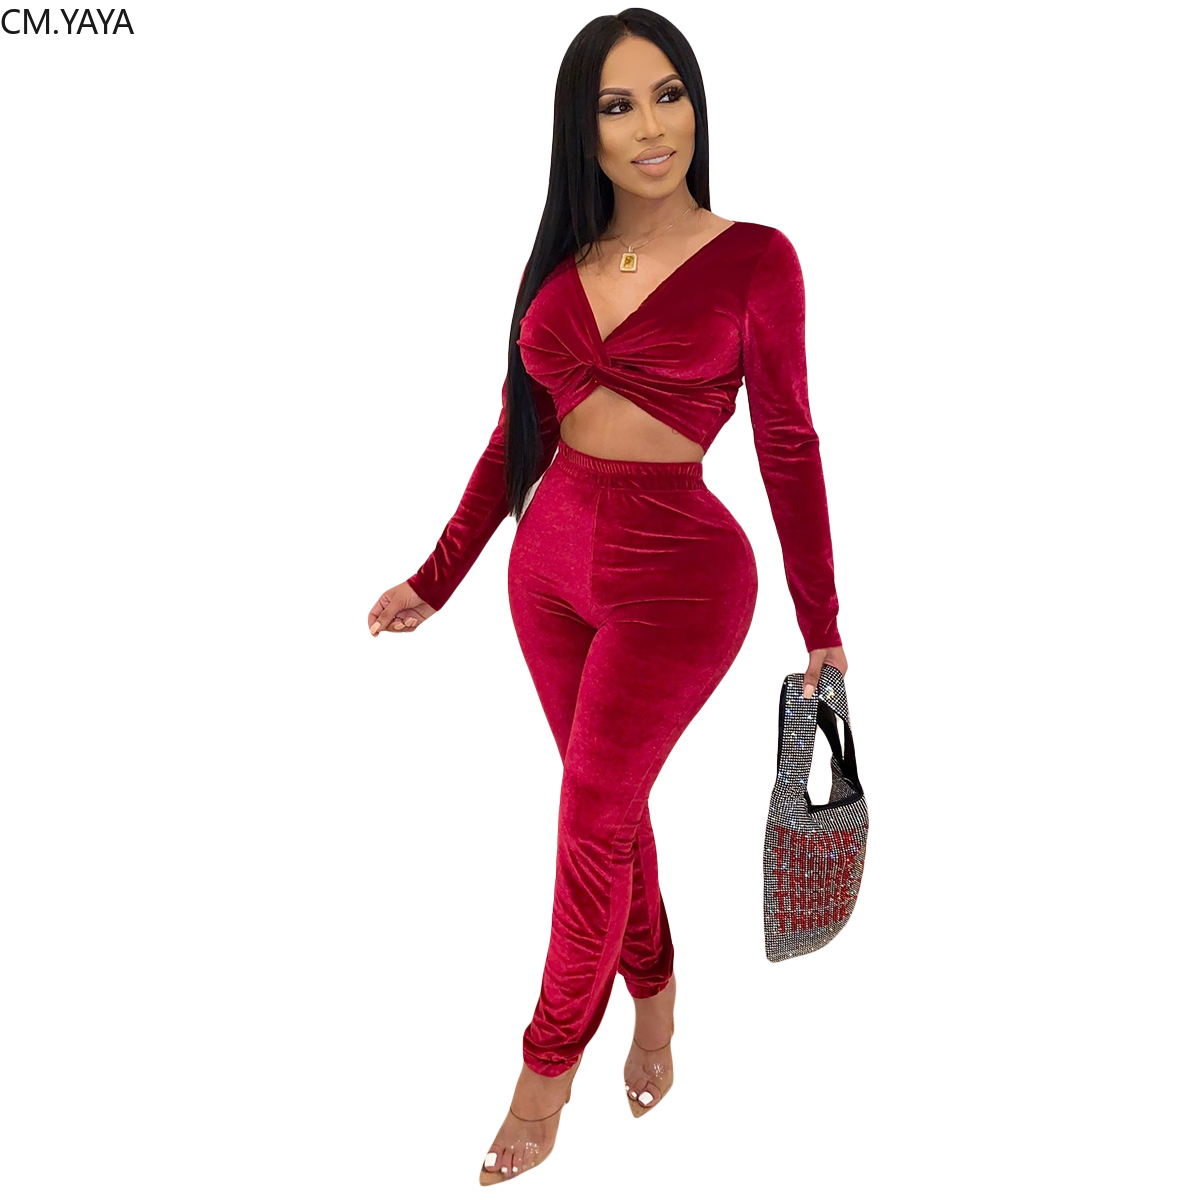 GL Autumn Winter Women's Set Full Sleeve V-Neck Crop Top Long Leggings Pants Solid Velvet Two Piece Set Tracksuit Outfits YY5132